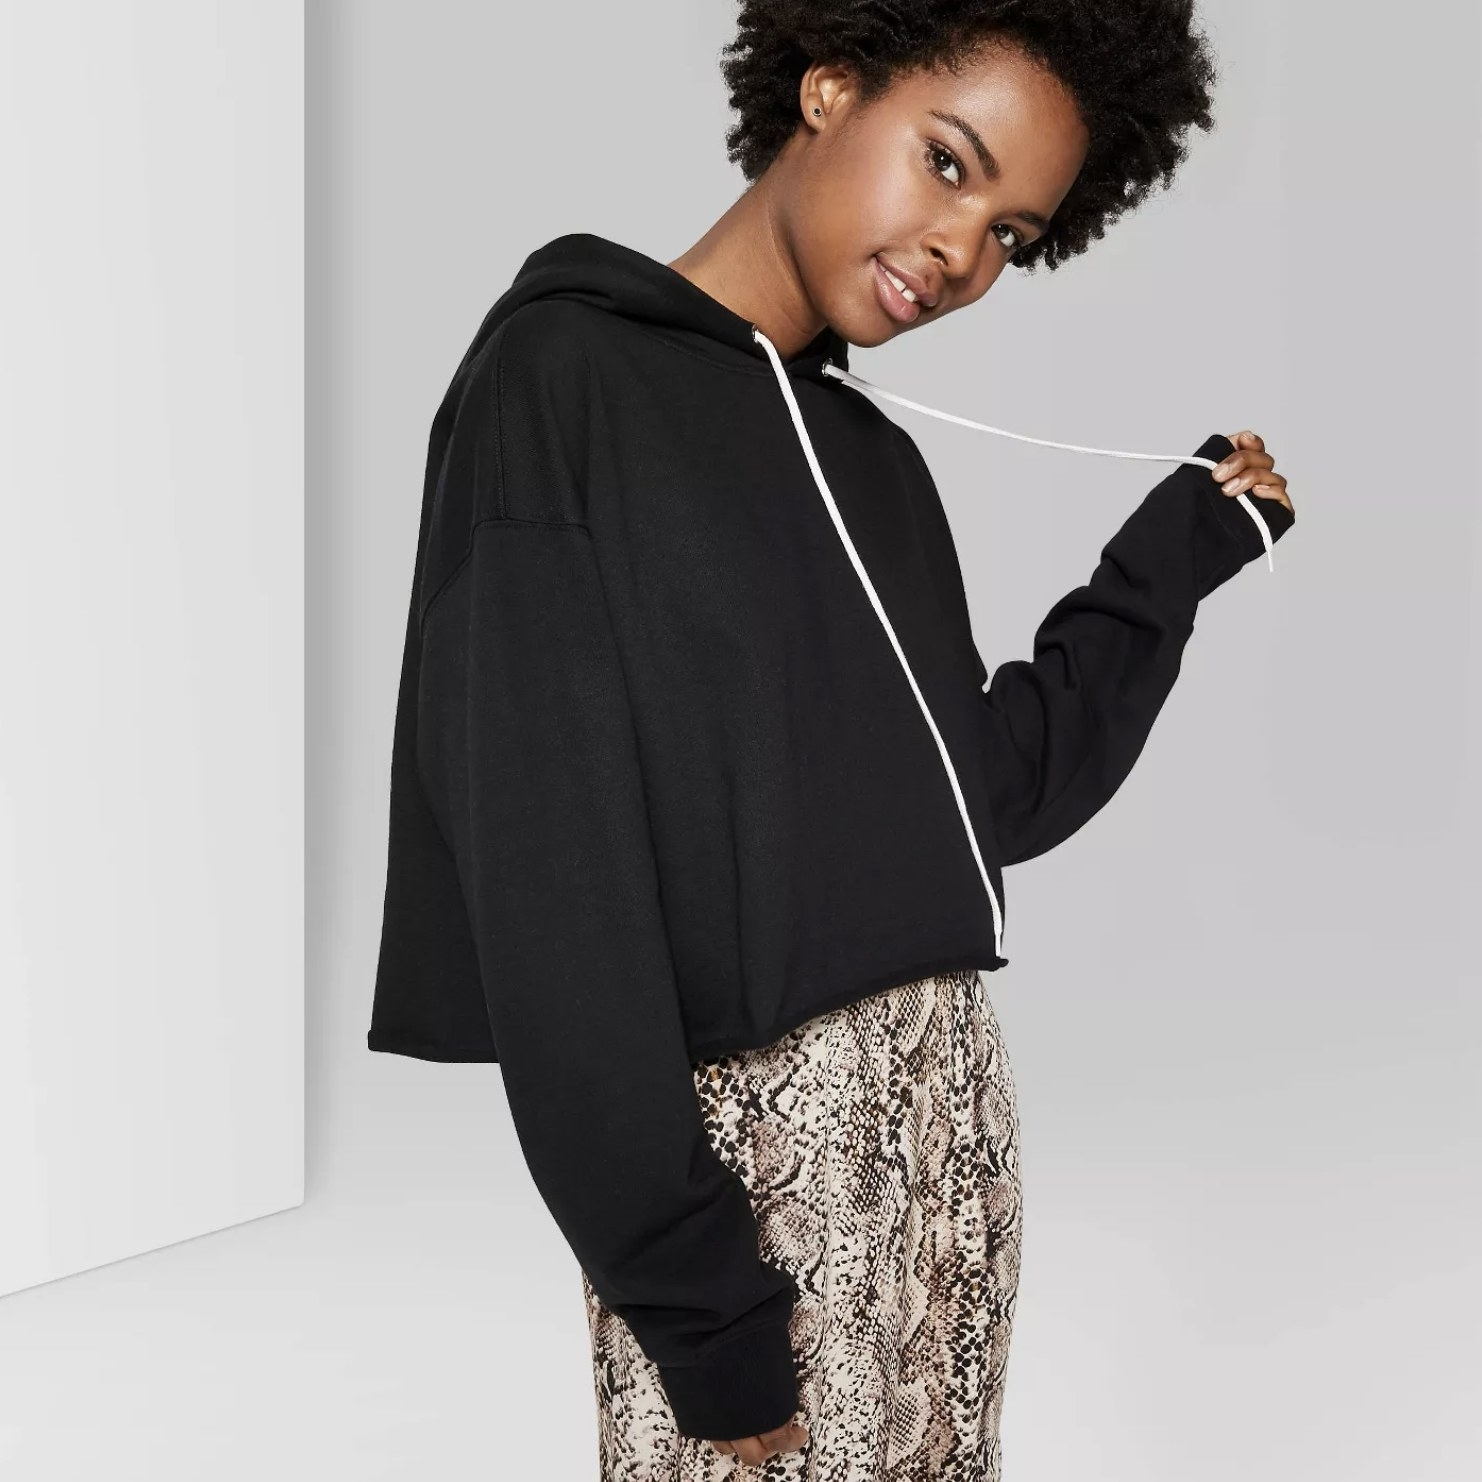 Model is wearing a black cropped hoodie with white drawstrings and a snakeskin skirt